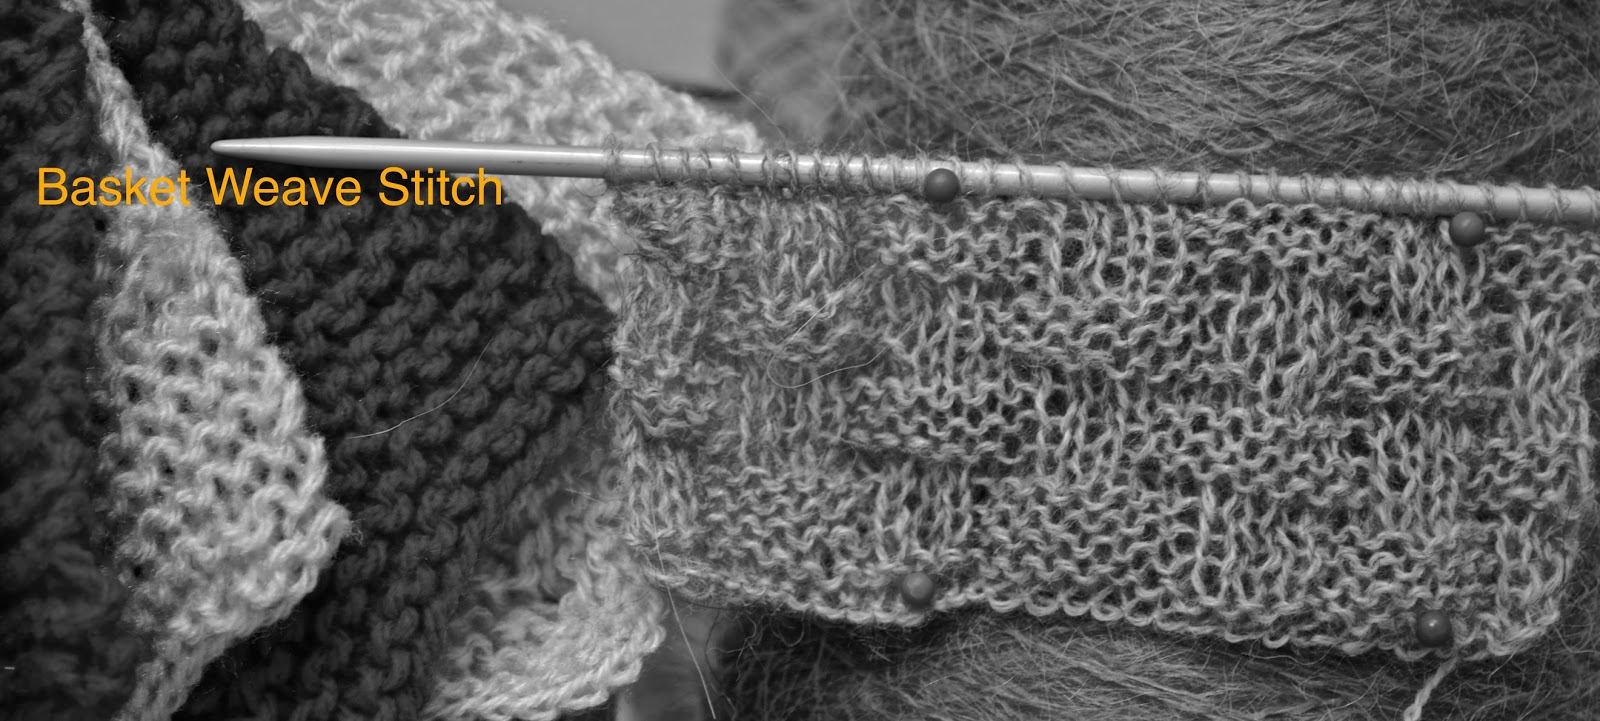 Knitting Novice The Weekly Swatch The Basket Weave Stitch